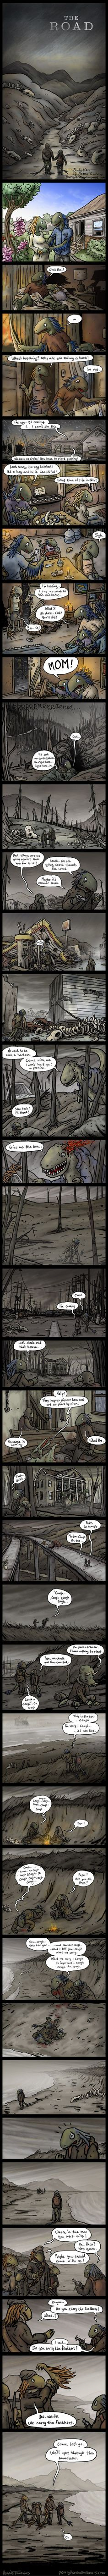 The Road ----- Agh - comic, why do you hurt my feels!!!!